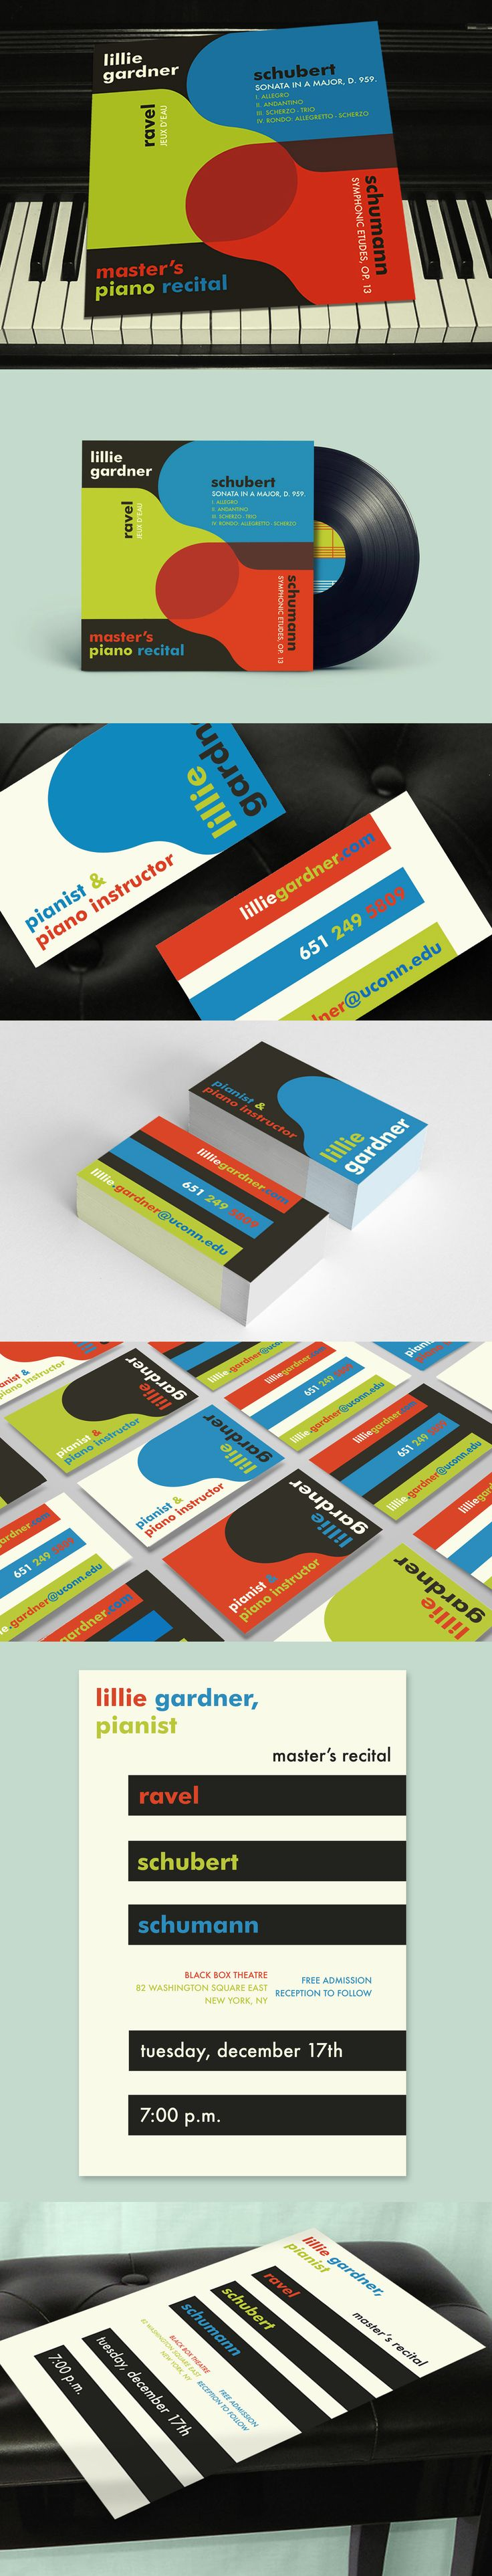 Album artwork, poster, and business card designs for classical pianist, Lillie Gardner. Through the use of bold, colorful graphic shapes that reference the instrument itself, this design reflects the playful energy of the music in a sophisticated style. #graphicdesign #design #branding #packaging #businesscards #albumart #poster #typography #color #piano #classical